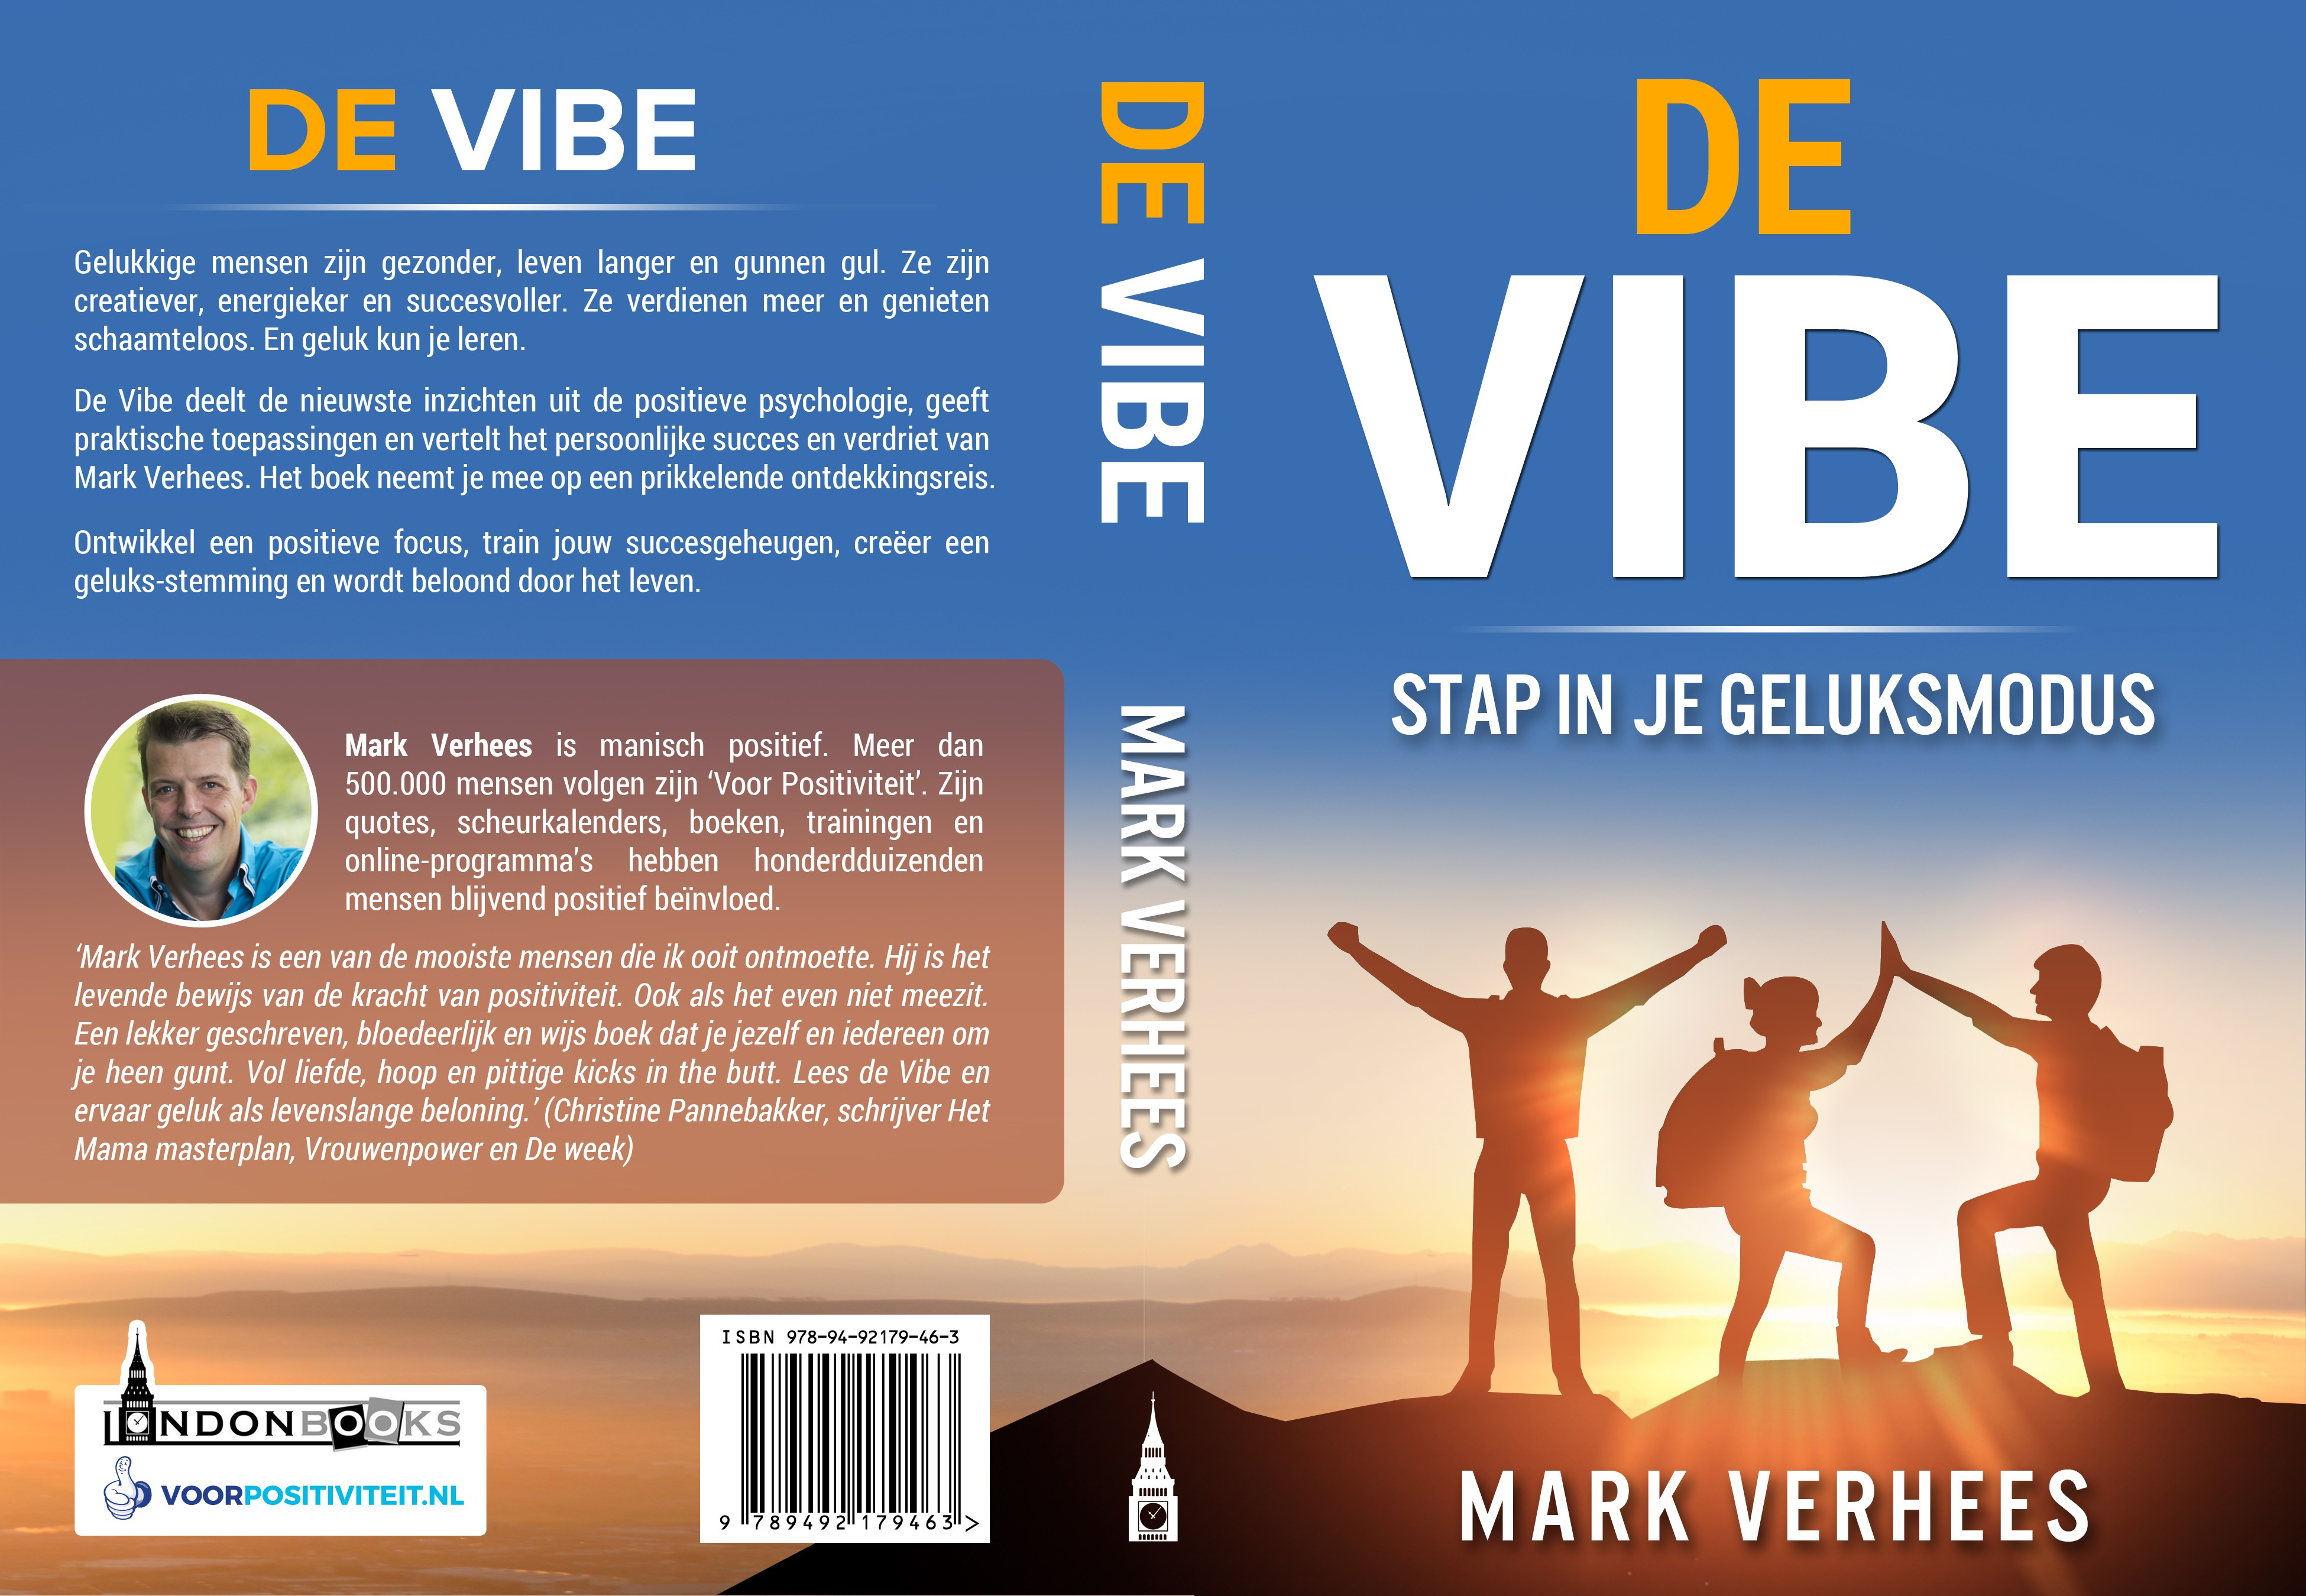 CREATE A BOOKCOVER THAT MAKES PEOPLE WANT TO BE IN THE VIBE, A POSITIVE STATE WHERE EVERYTHING FLOWS